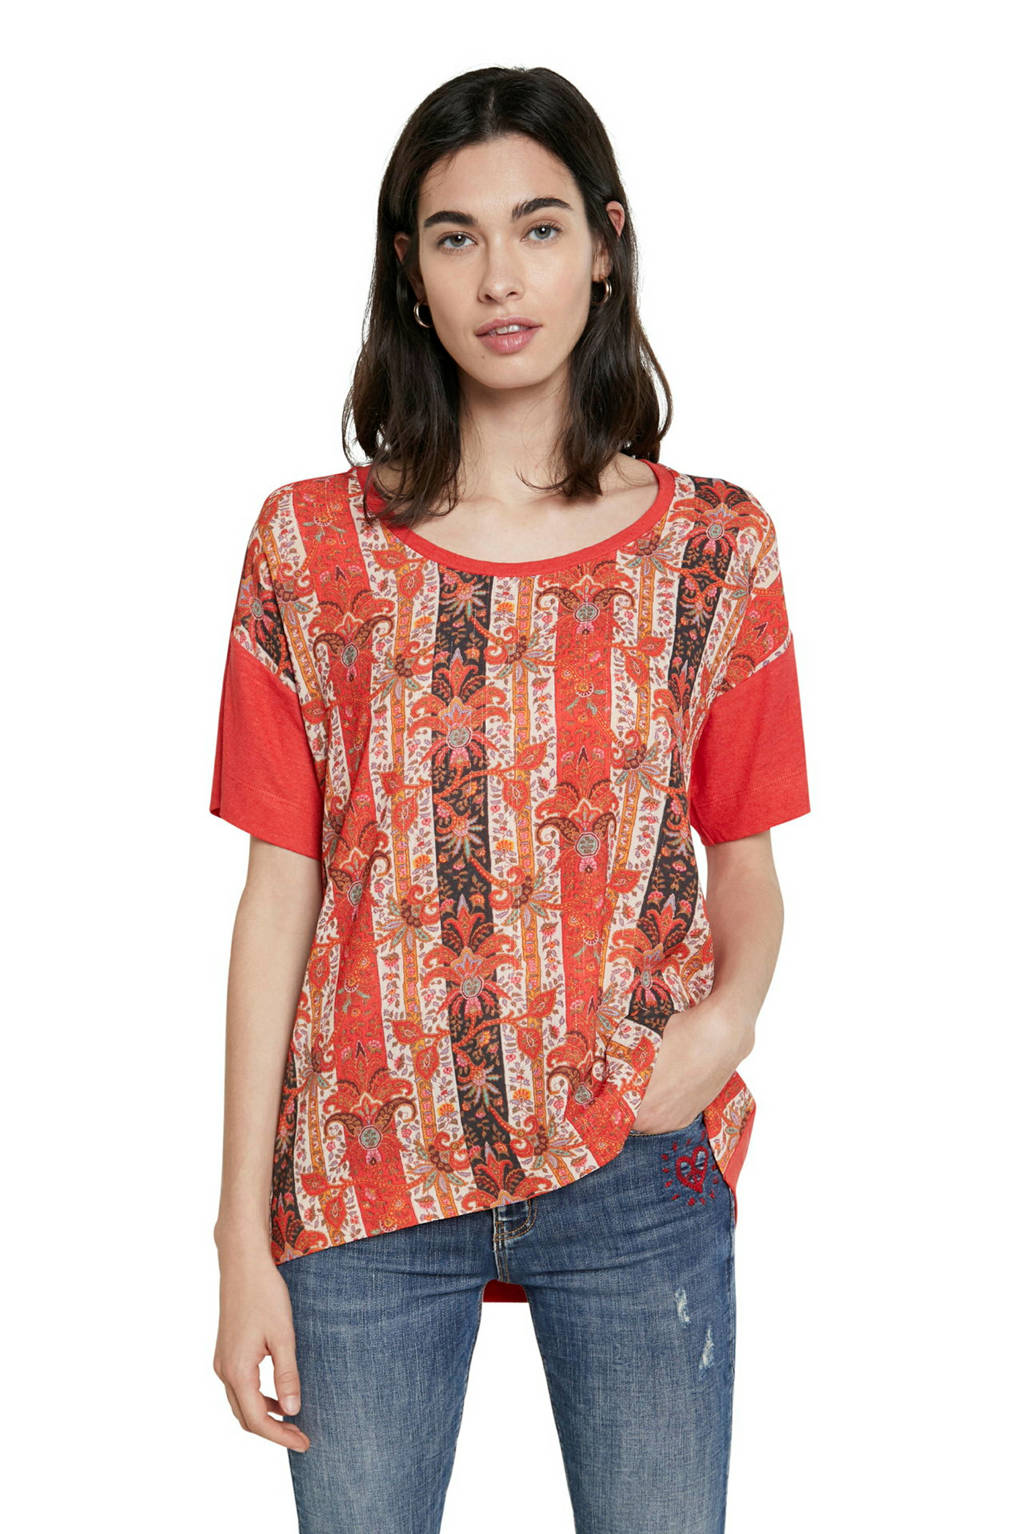 Desigual T-shirt met all over print rood/roze, Rood/roze